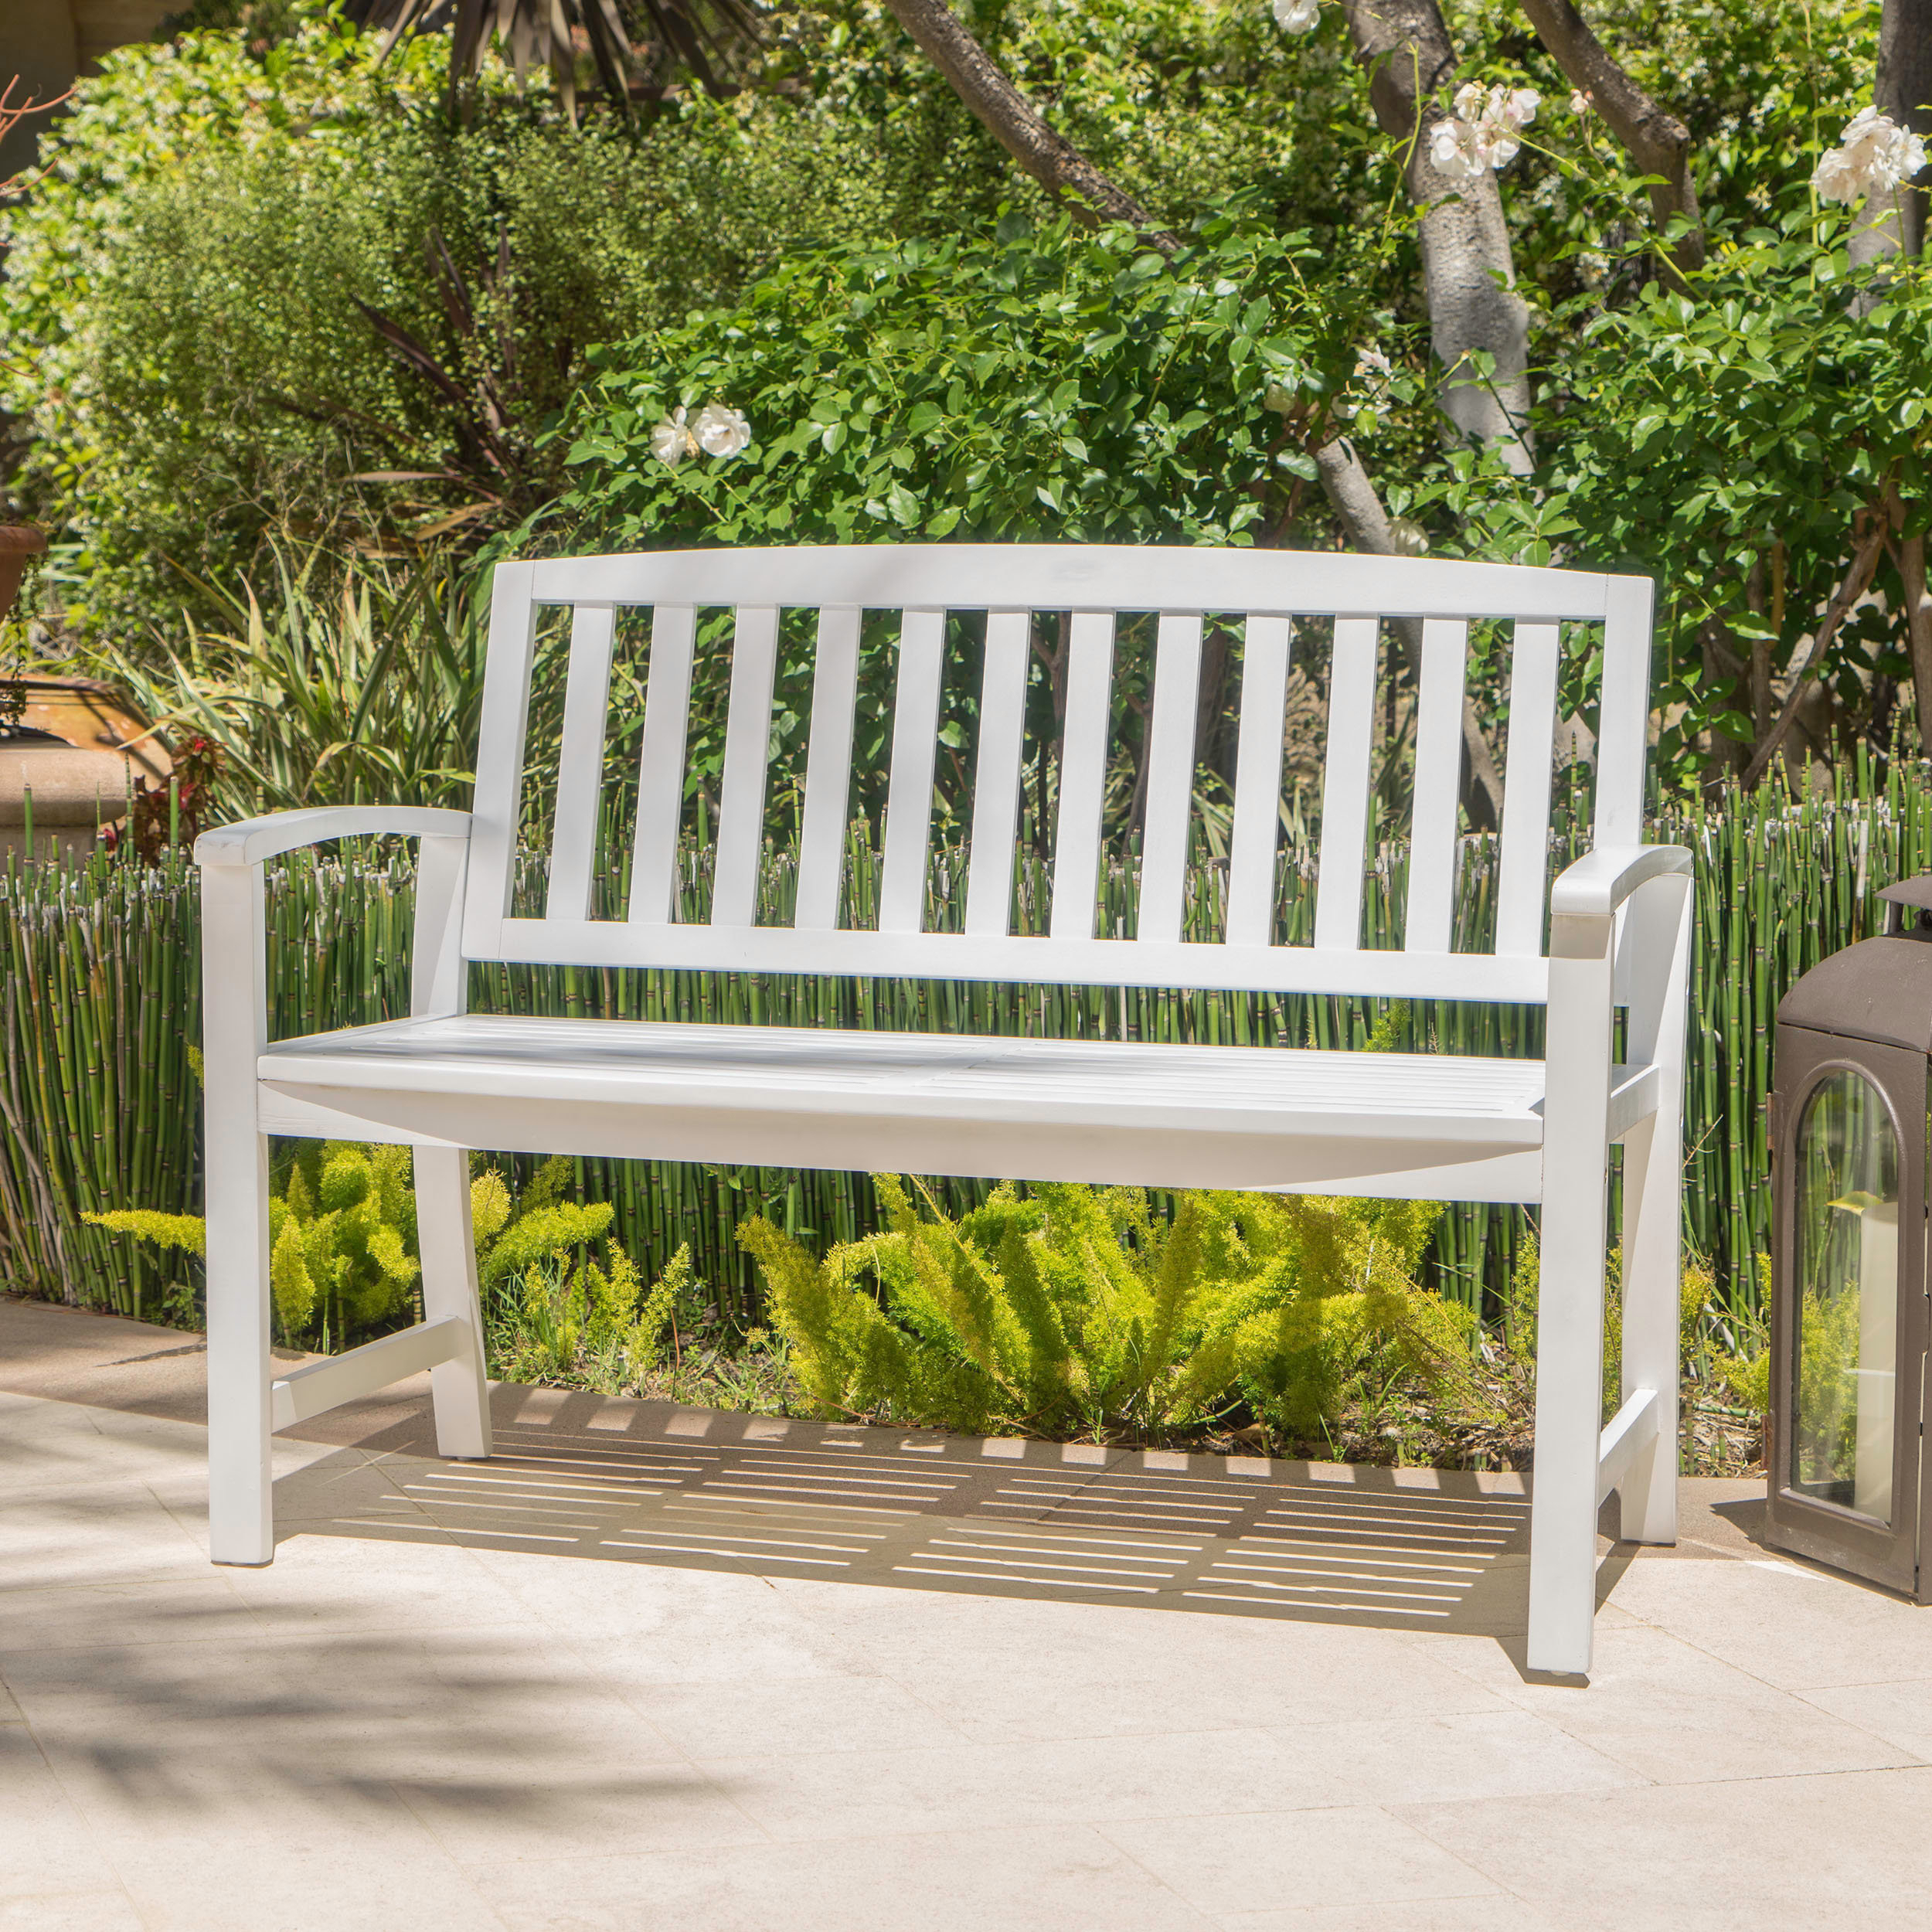 Garden Bench – 15 Free Hq Online Puzzle Games On Intended For Leora Wooden Garden Benches (View 16 of 25)